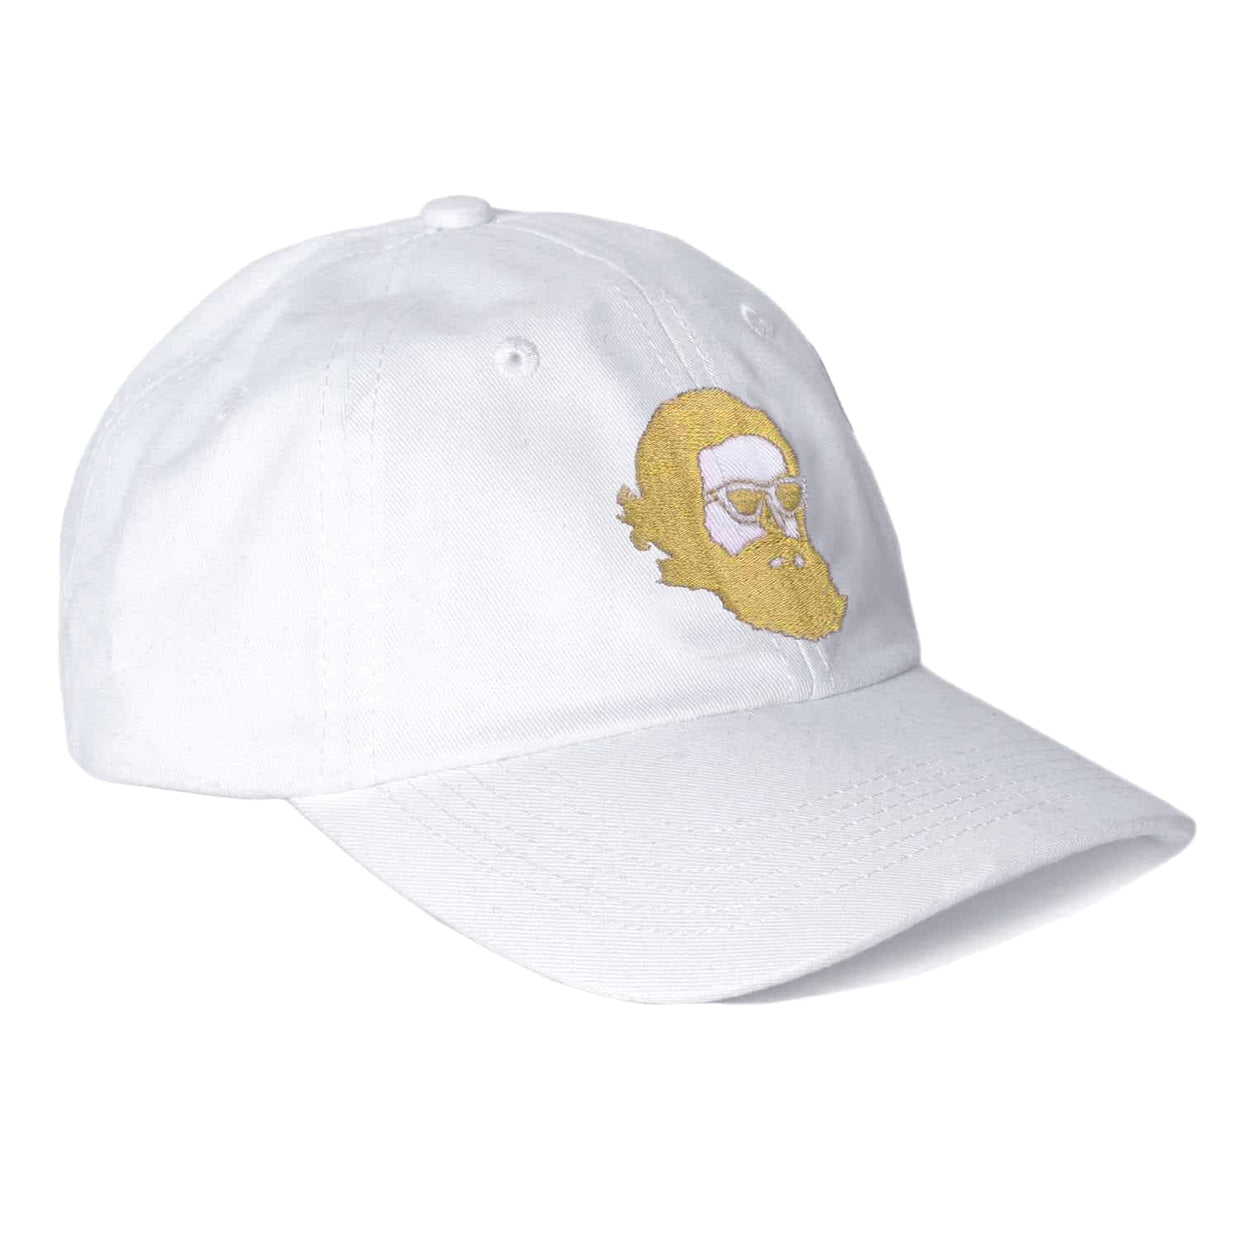 'Misty Face' Embroidered Dad Hat - White